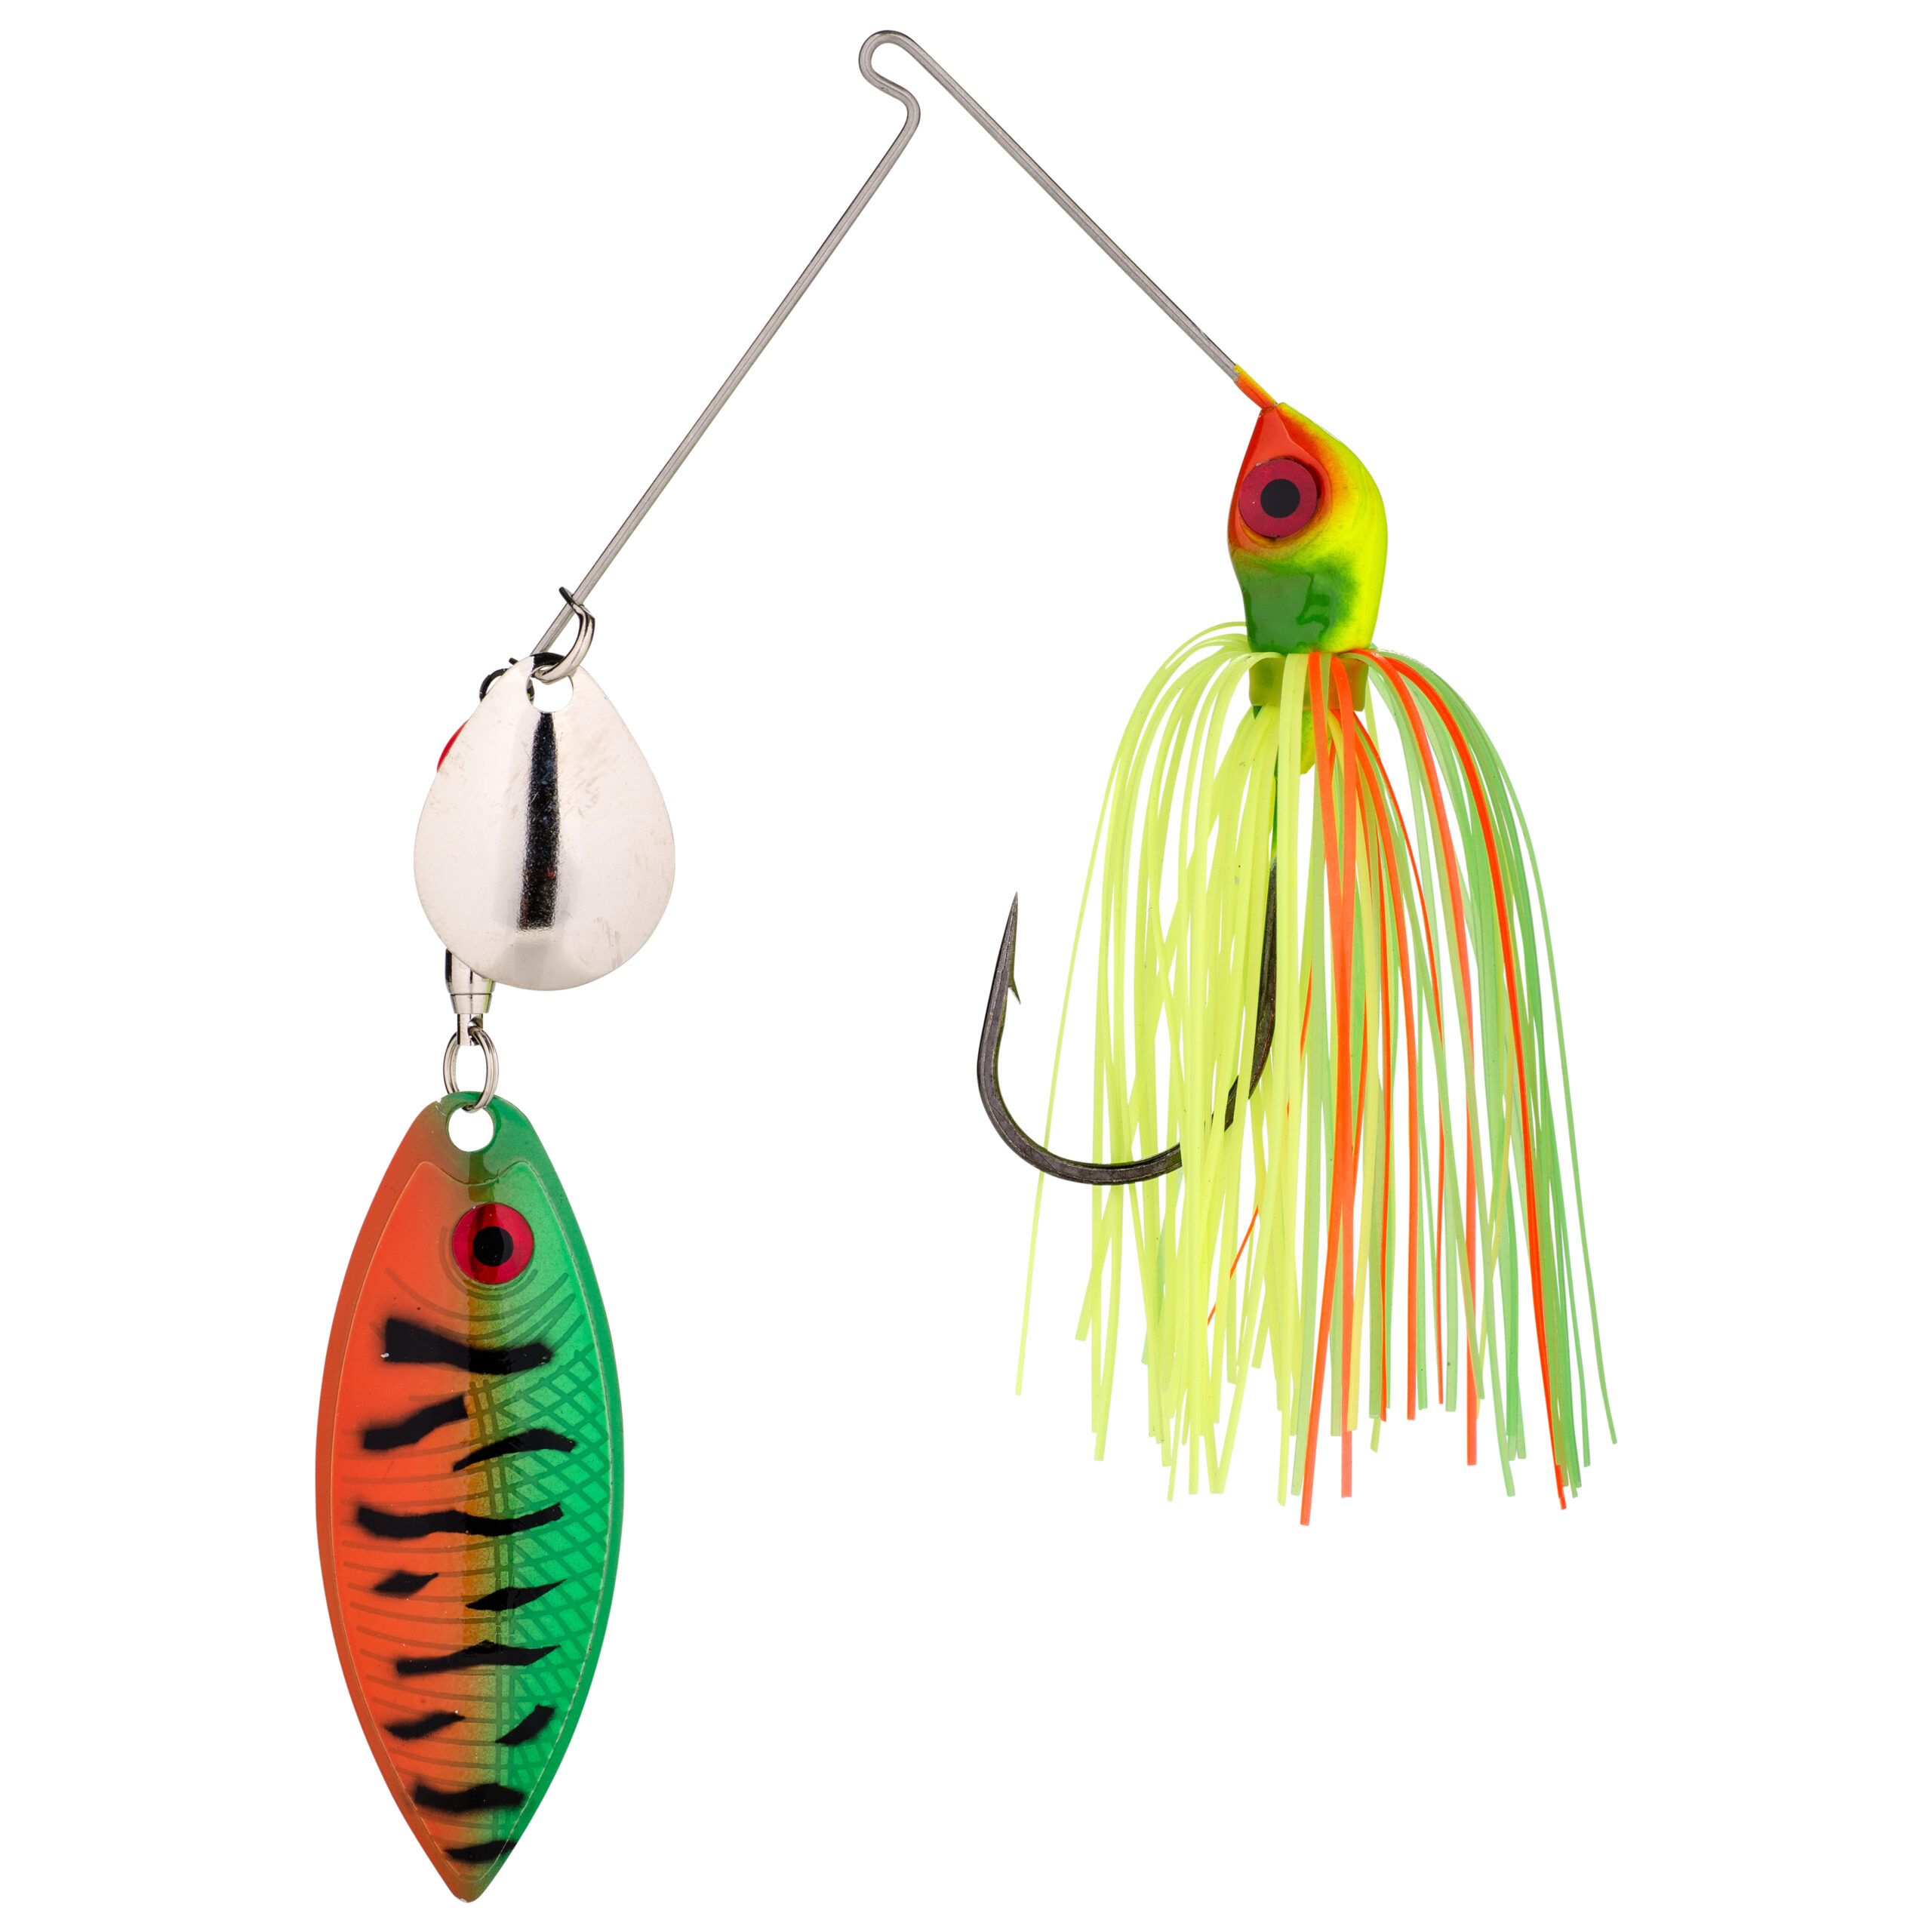 Strike King Lures – Spinnerbaits – Colorado Willow – Red Eyed Special - 3/8oz - REYE38CW-45 - Fire Tiger